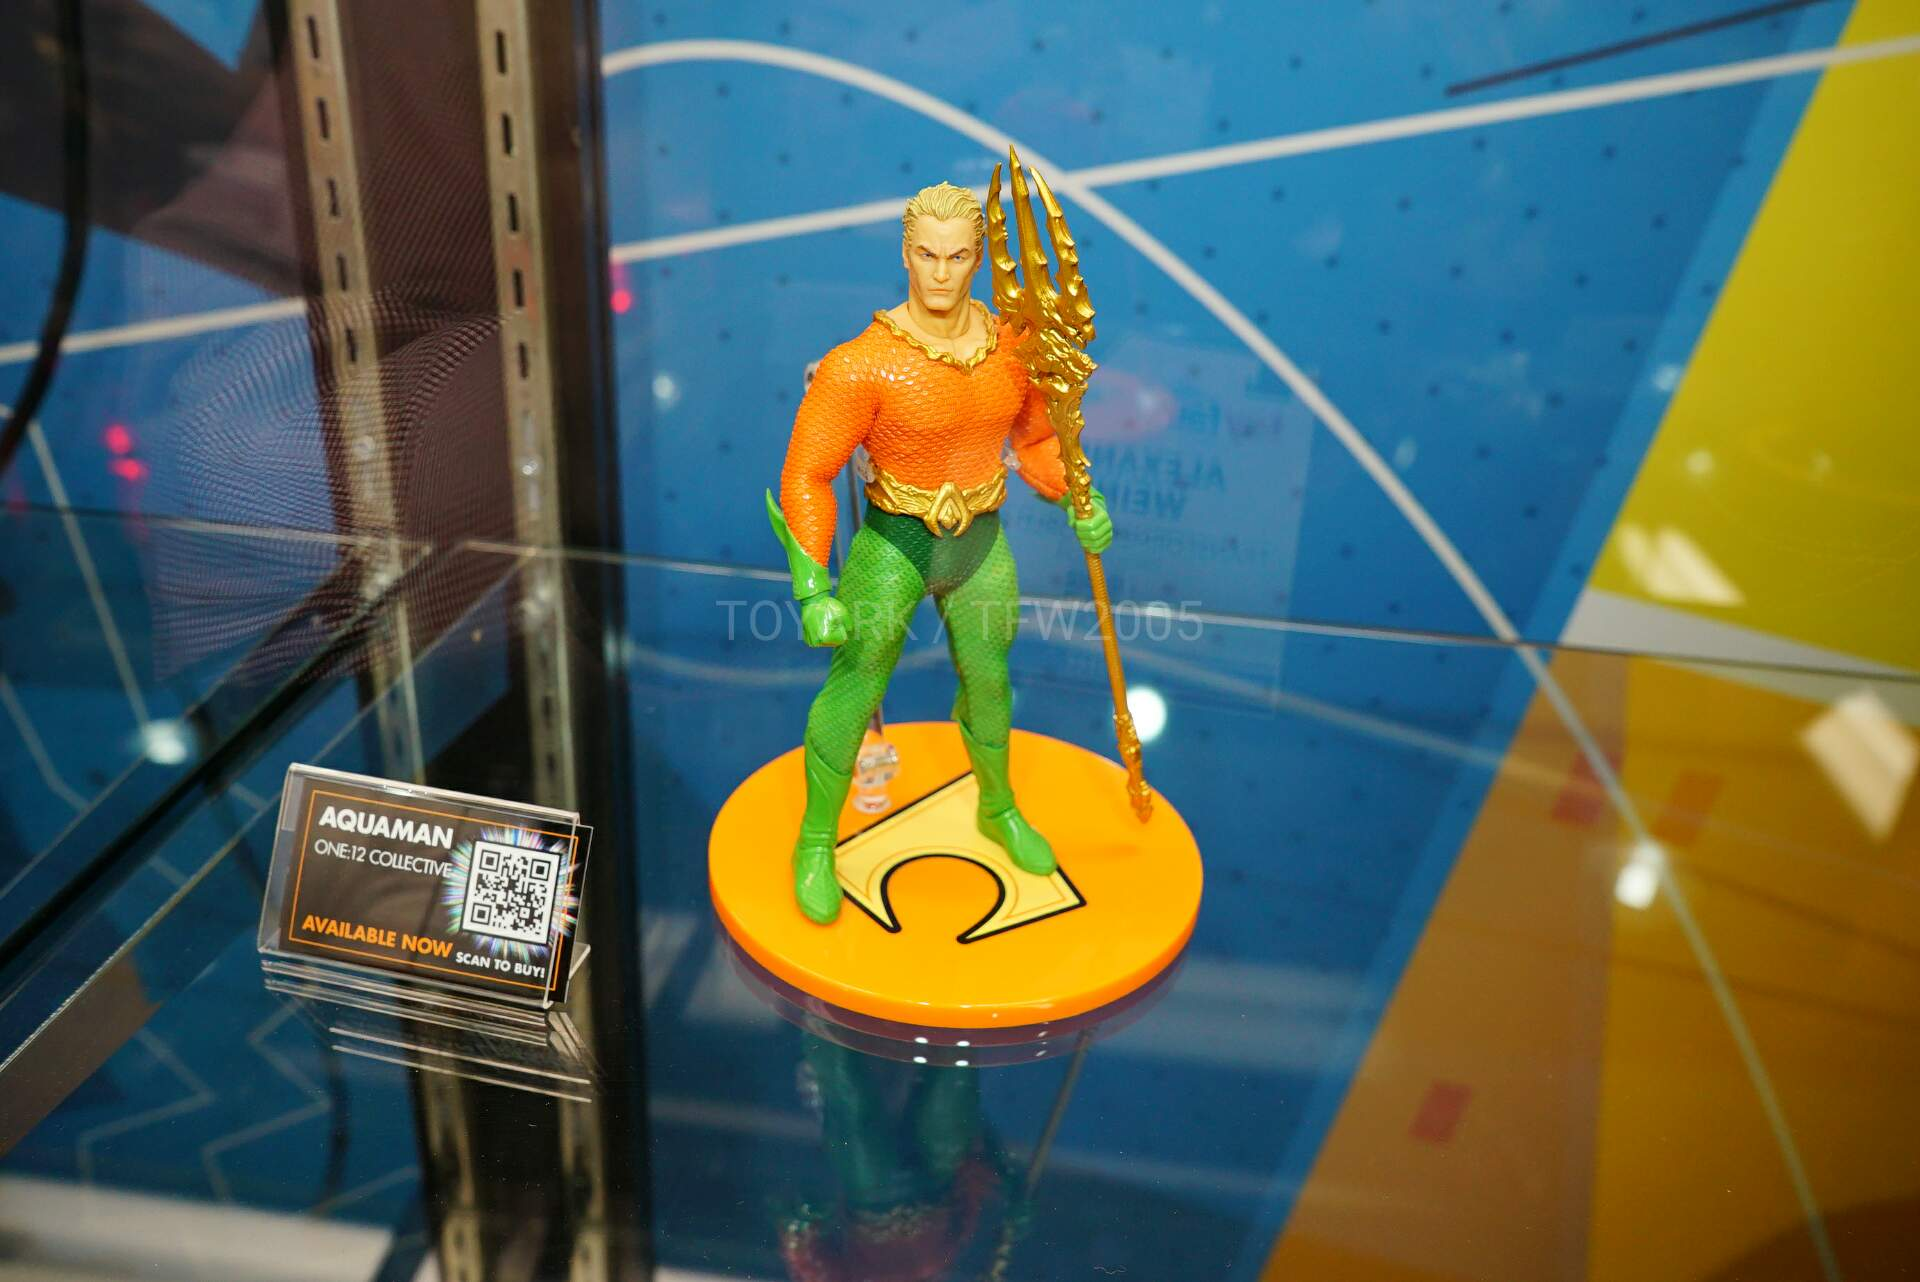 Toy-Fair-2020-Mezco-One12-014.jpg